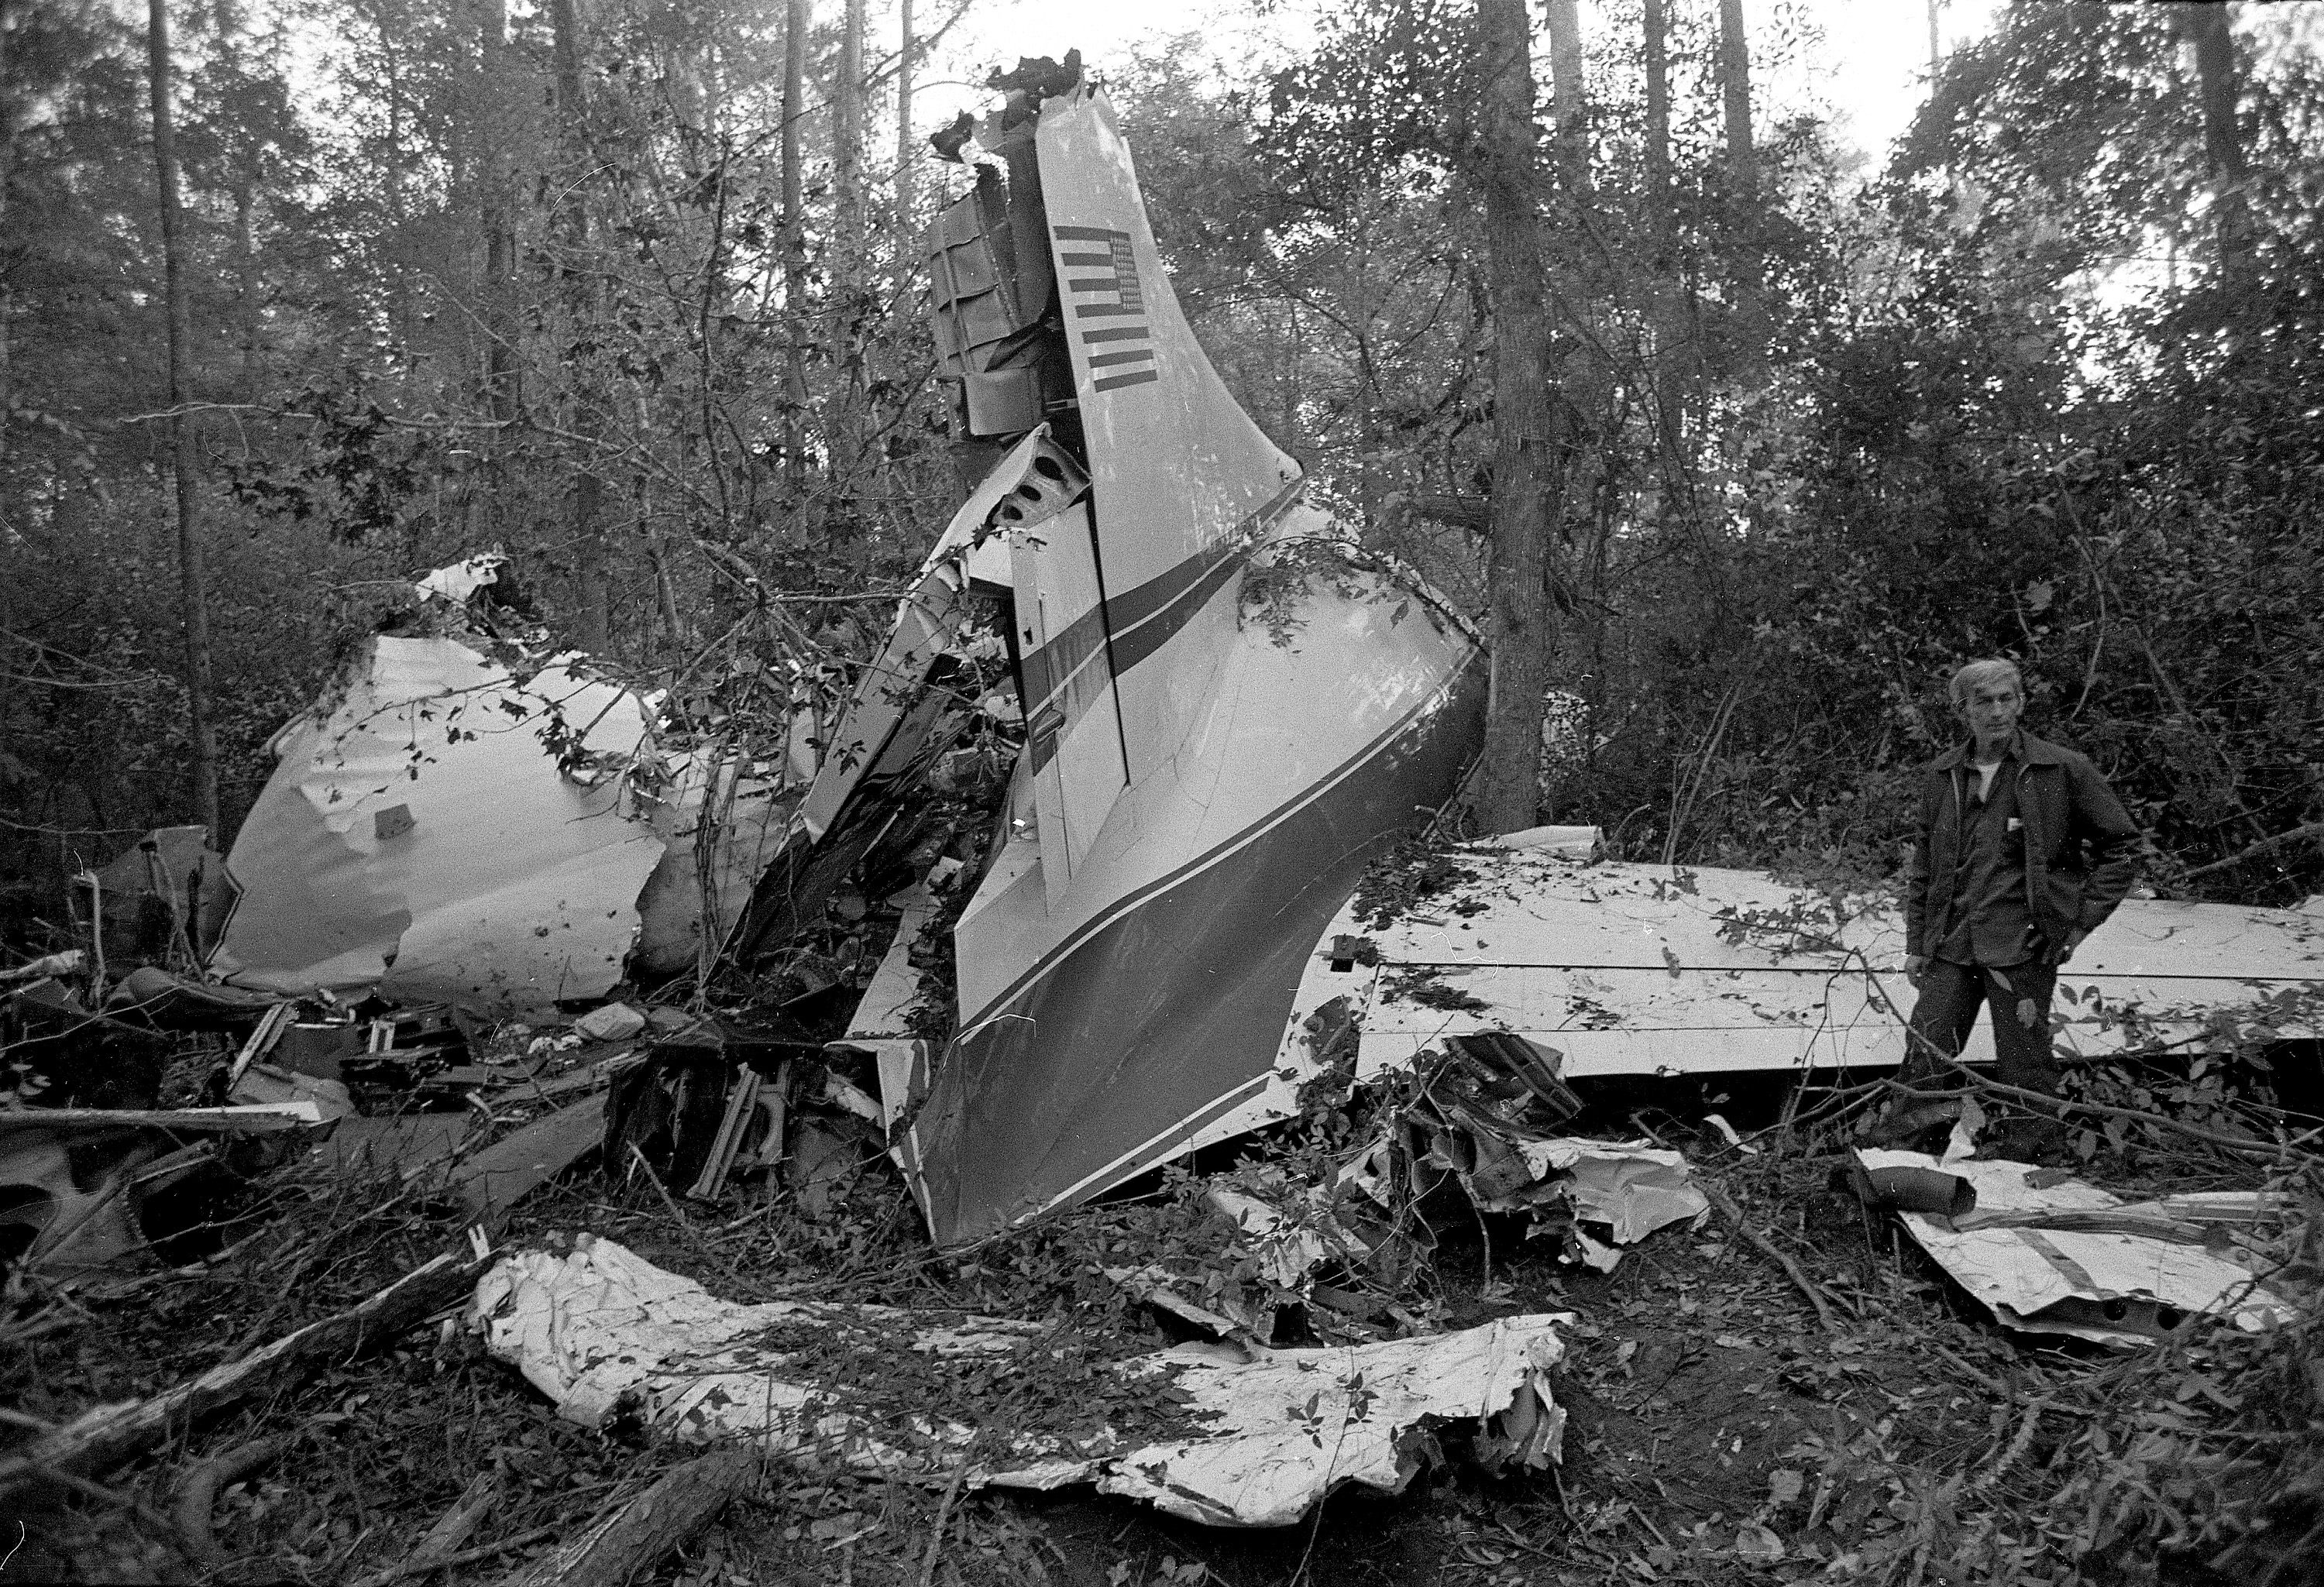 October 20, 1977: Skynyrd Singer And Guitarist Killed In Plane Crash